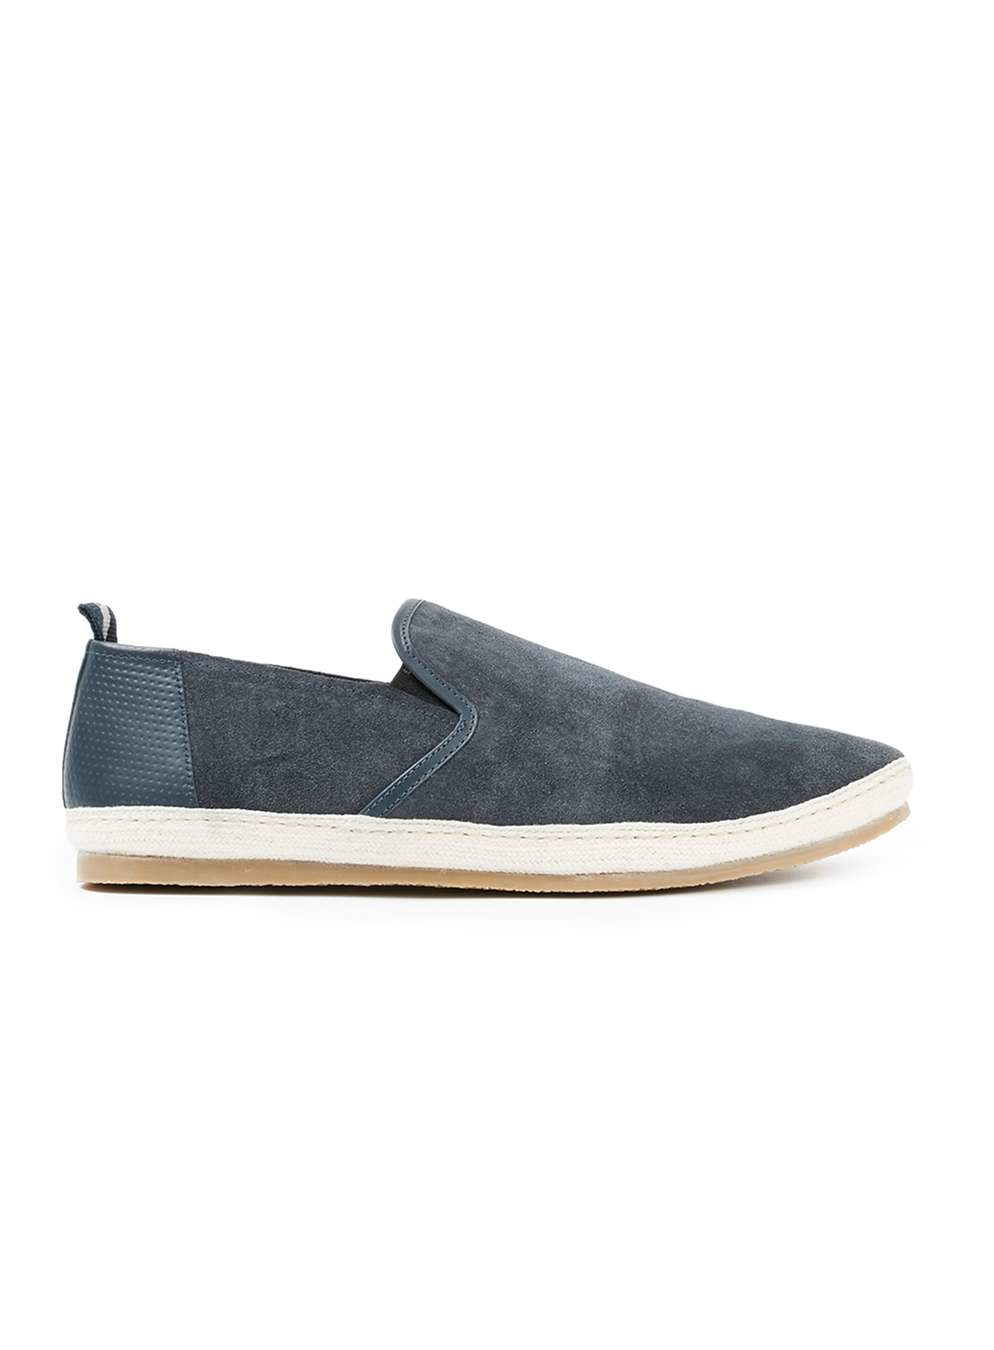 topman navy suede casual slip ons in blue for lyst